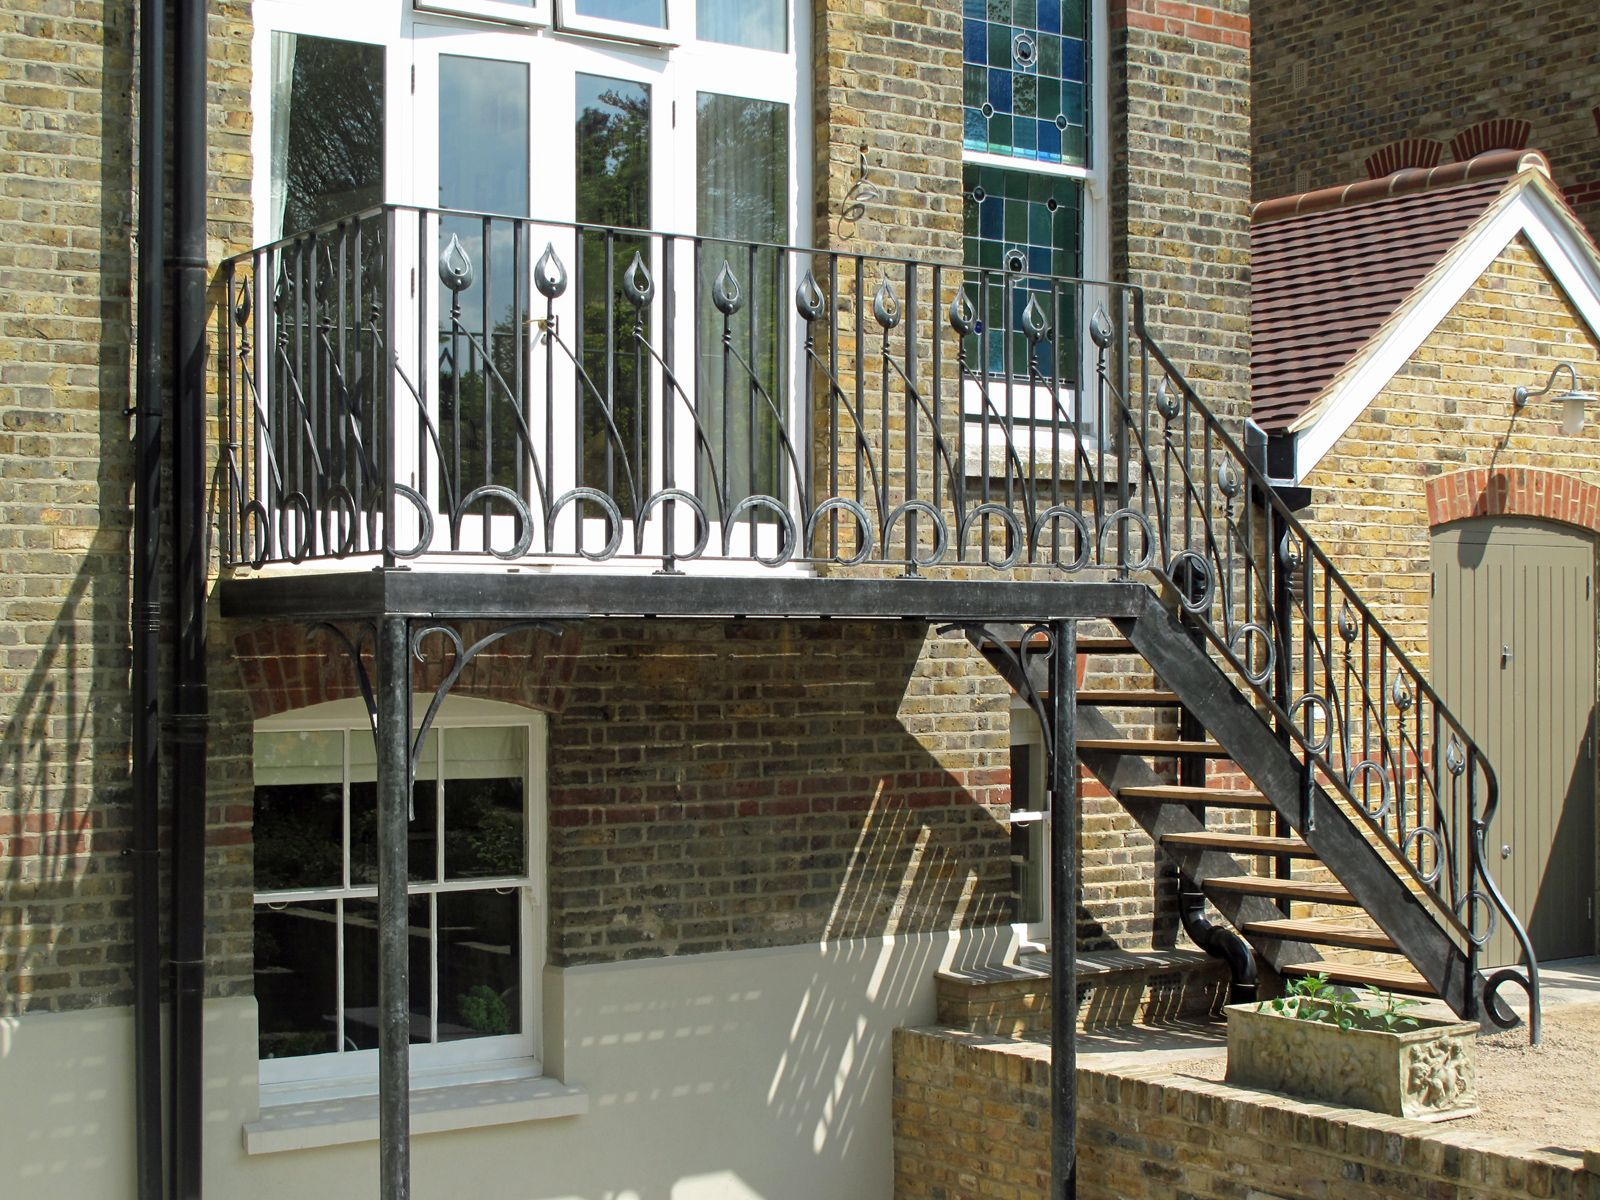 Bespoke architectural ironwork balcony and stairs for a Wimbledon town  house. The design of this forged metalwork balcony echoes the garden beyond.